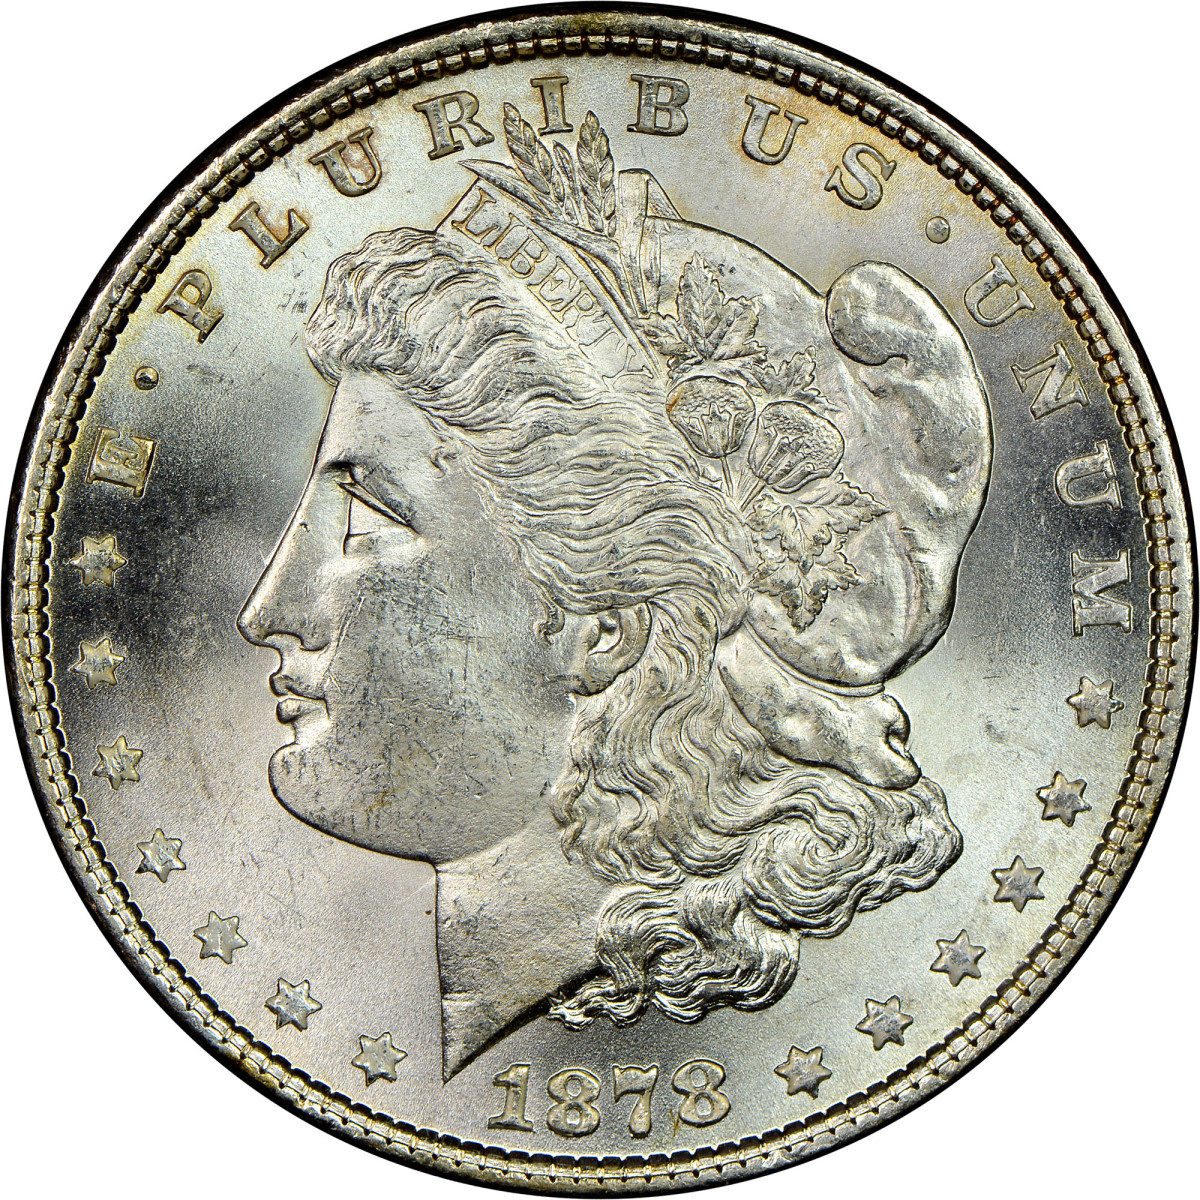 Popular with collectors and investors, genuine Morgan silver dollars, such as this one, were produced by the United States Mint between 1878 and 1921 – but beware of counterfeits in the marketplace. (Photo courtesy of Numismatic Guaranty Corporation.)